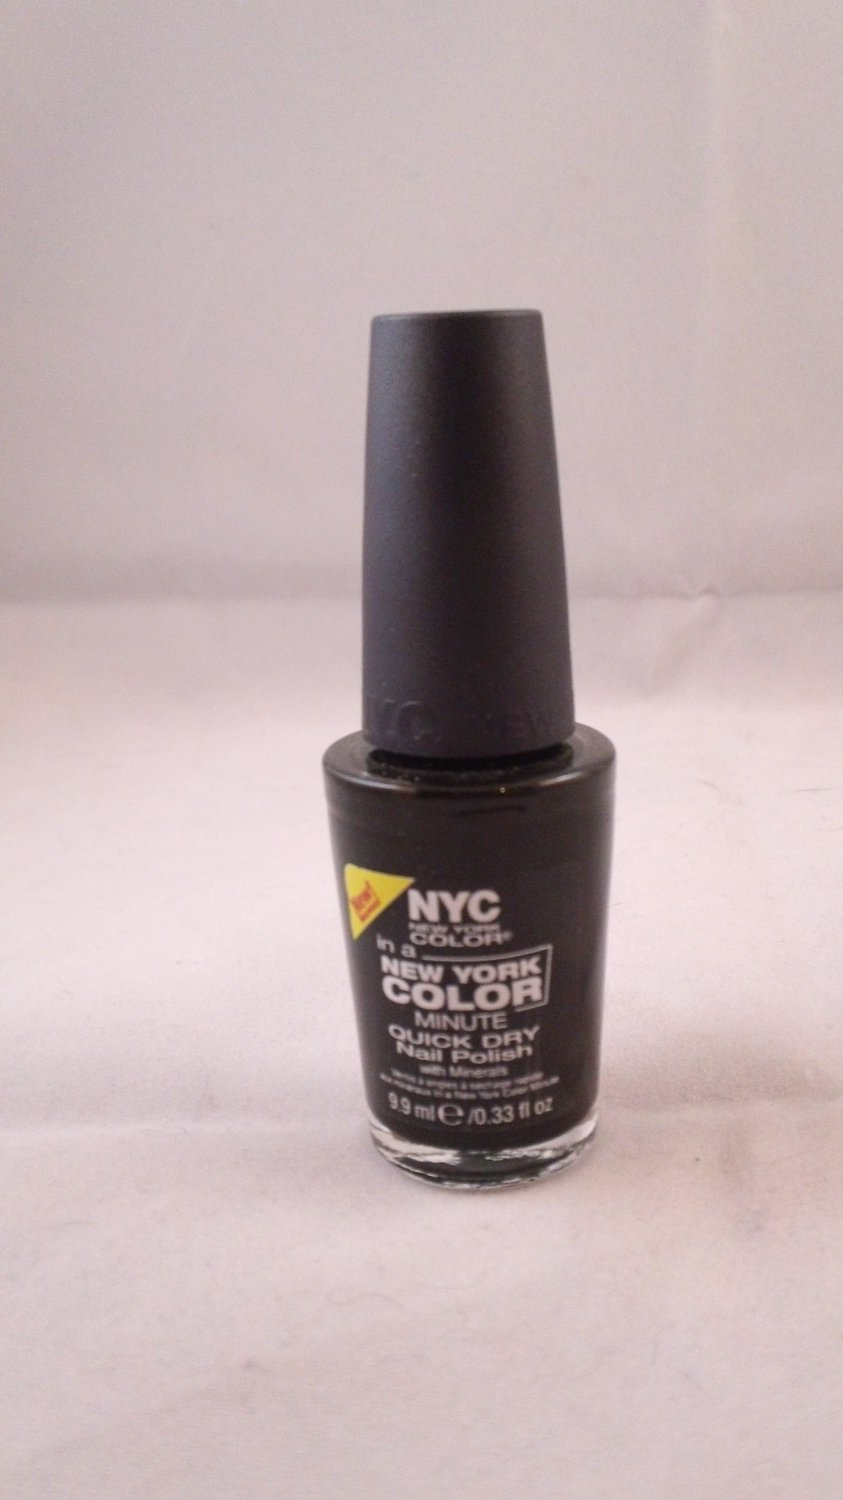 NYC In a New York Color Minute Quick Dry Nail Polish Enamel Lacquer #214B1 Flat Iron Green